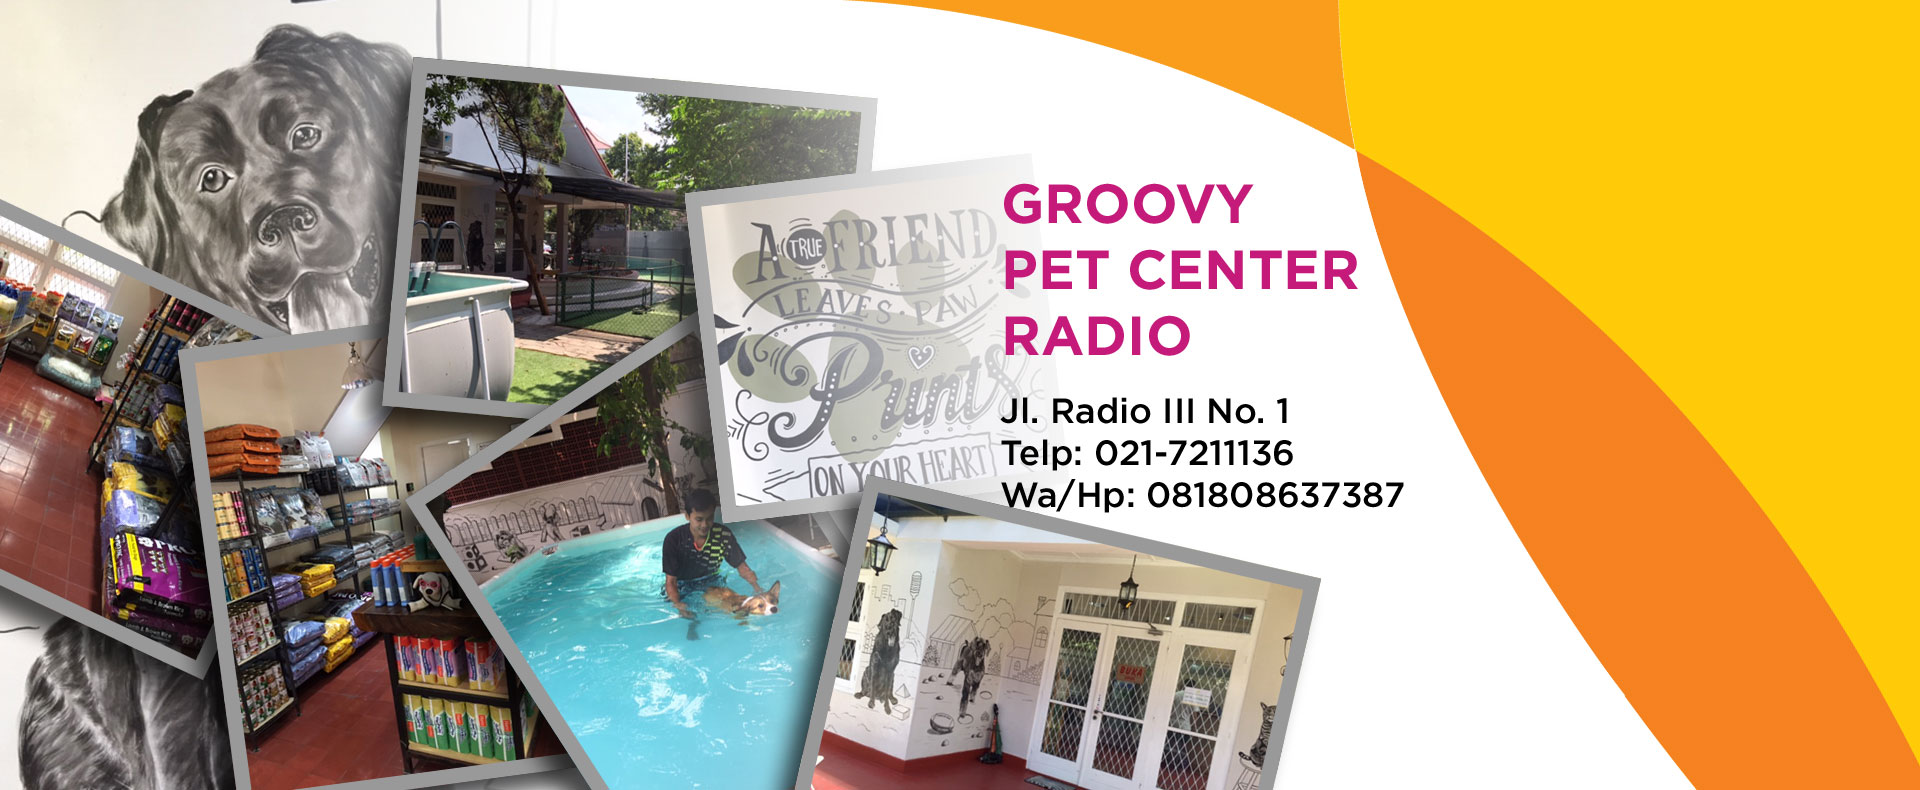 petcenter-radio-new